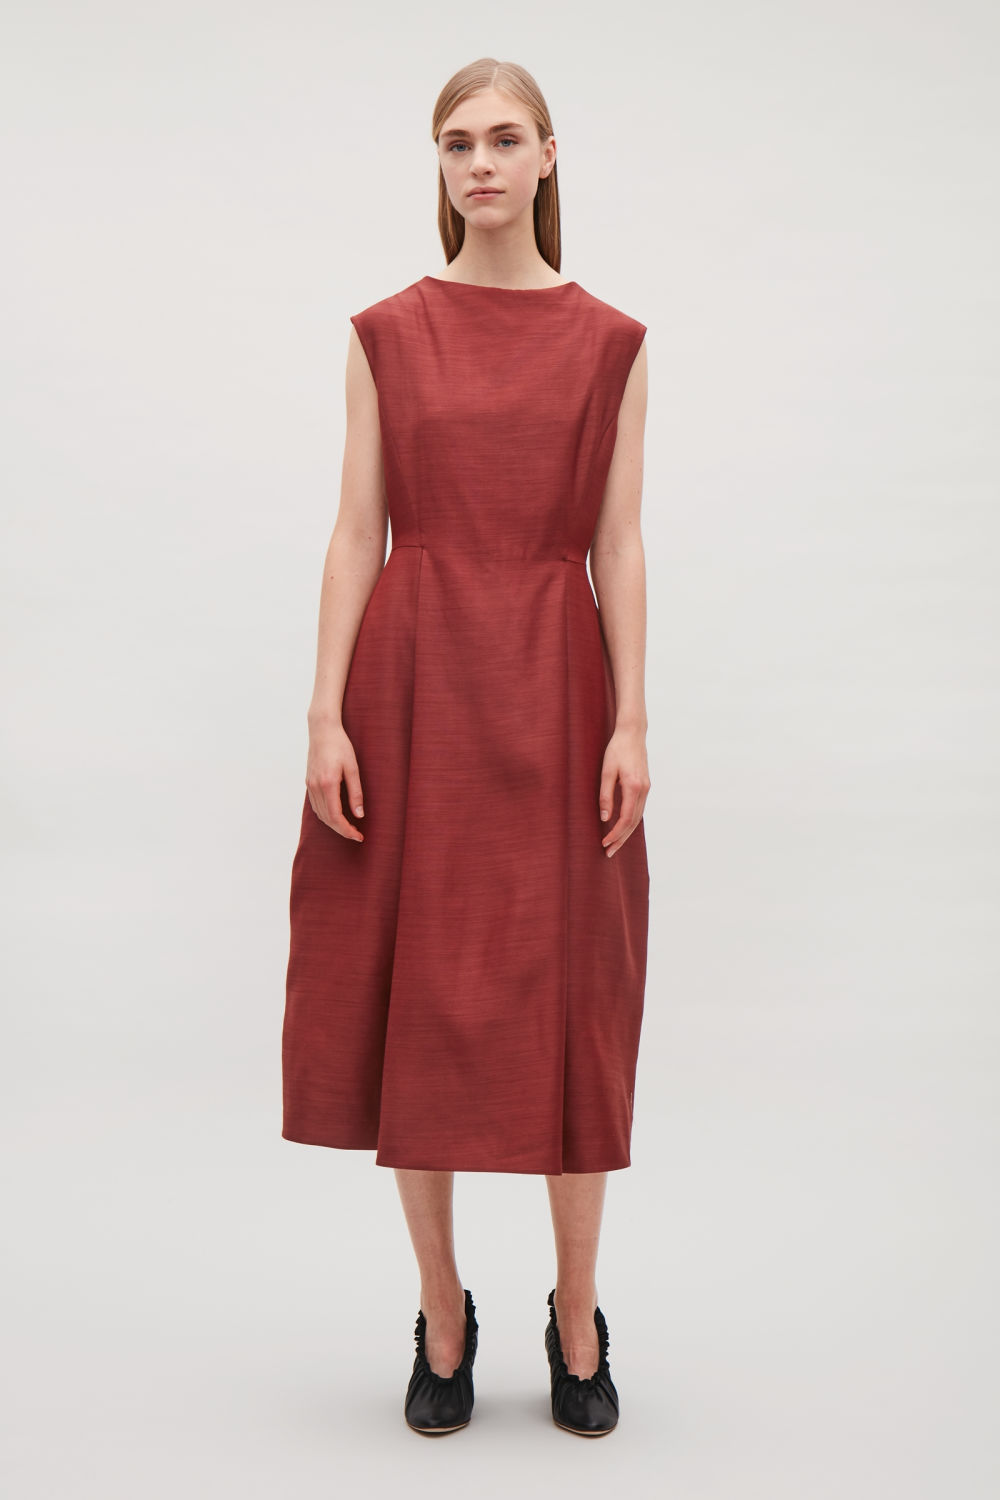 COS SILK DRESS WITH RAISED NECK,Red